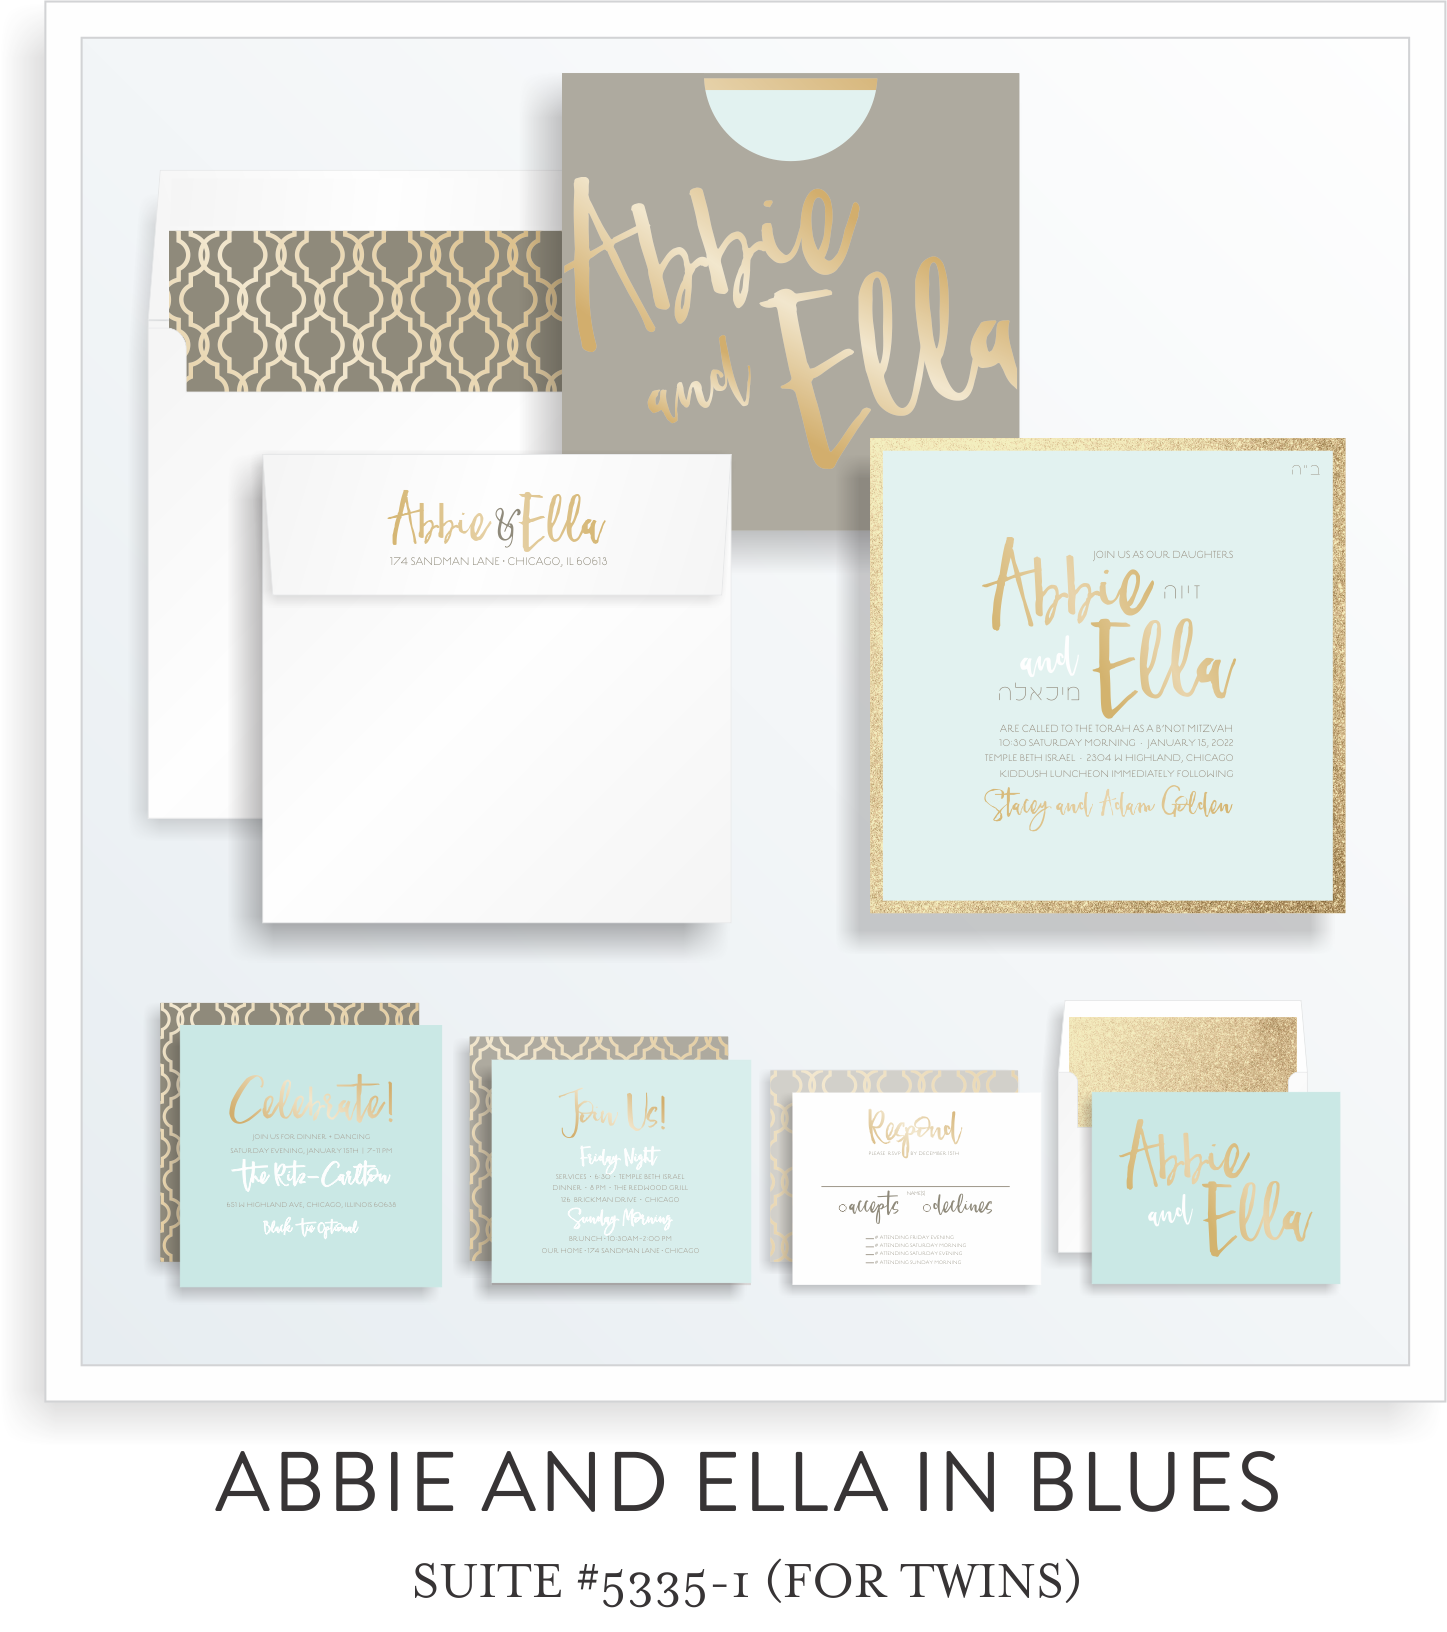 5335-1 ABBI AND ELLA IN BLUES SUITE THUMB.png